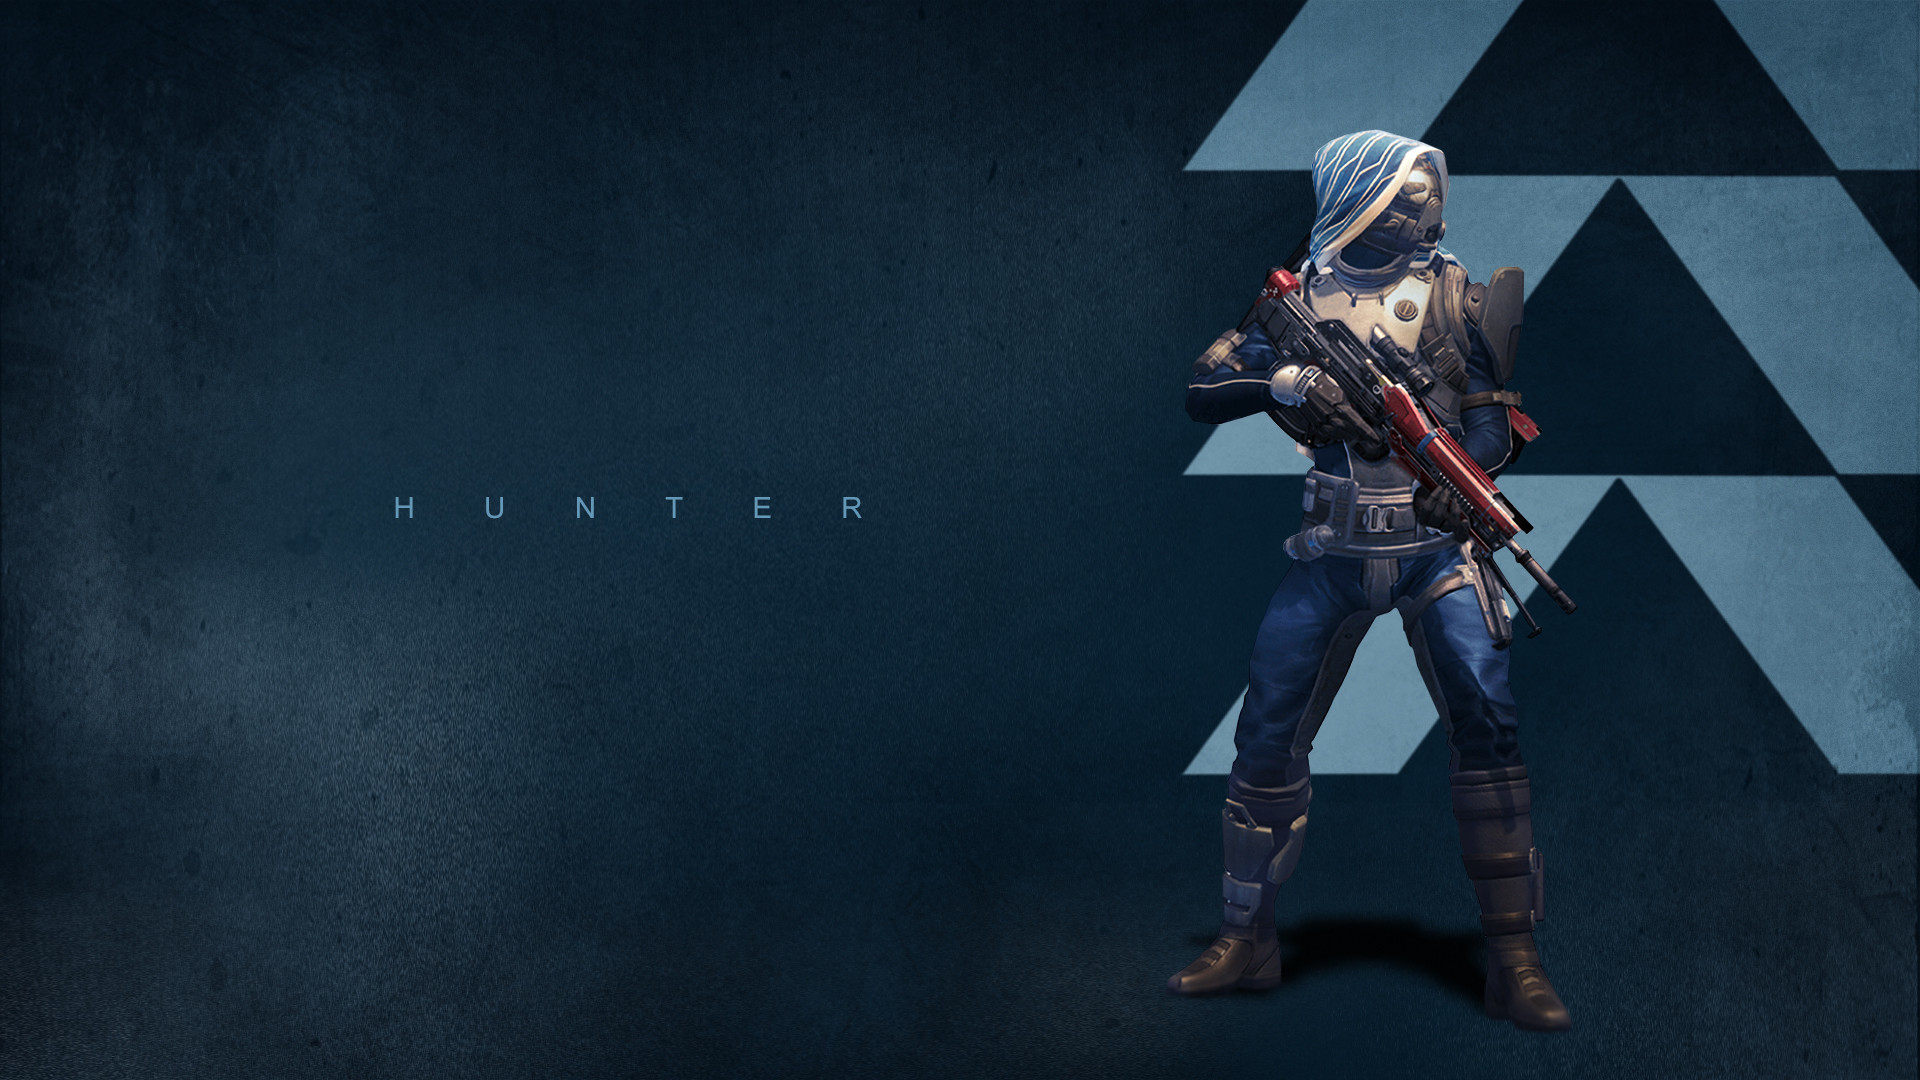 1920x1080 destiny-wallpaper-9291-9781-hd-wallpapers